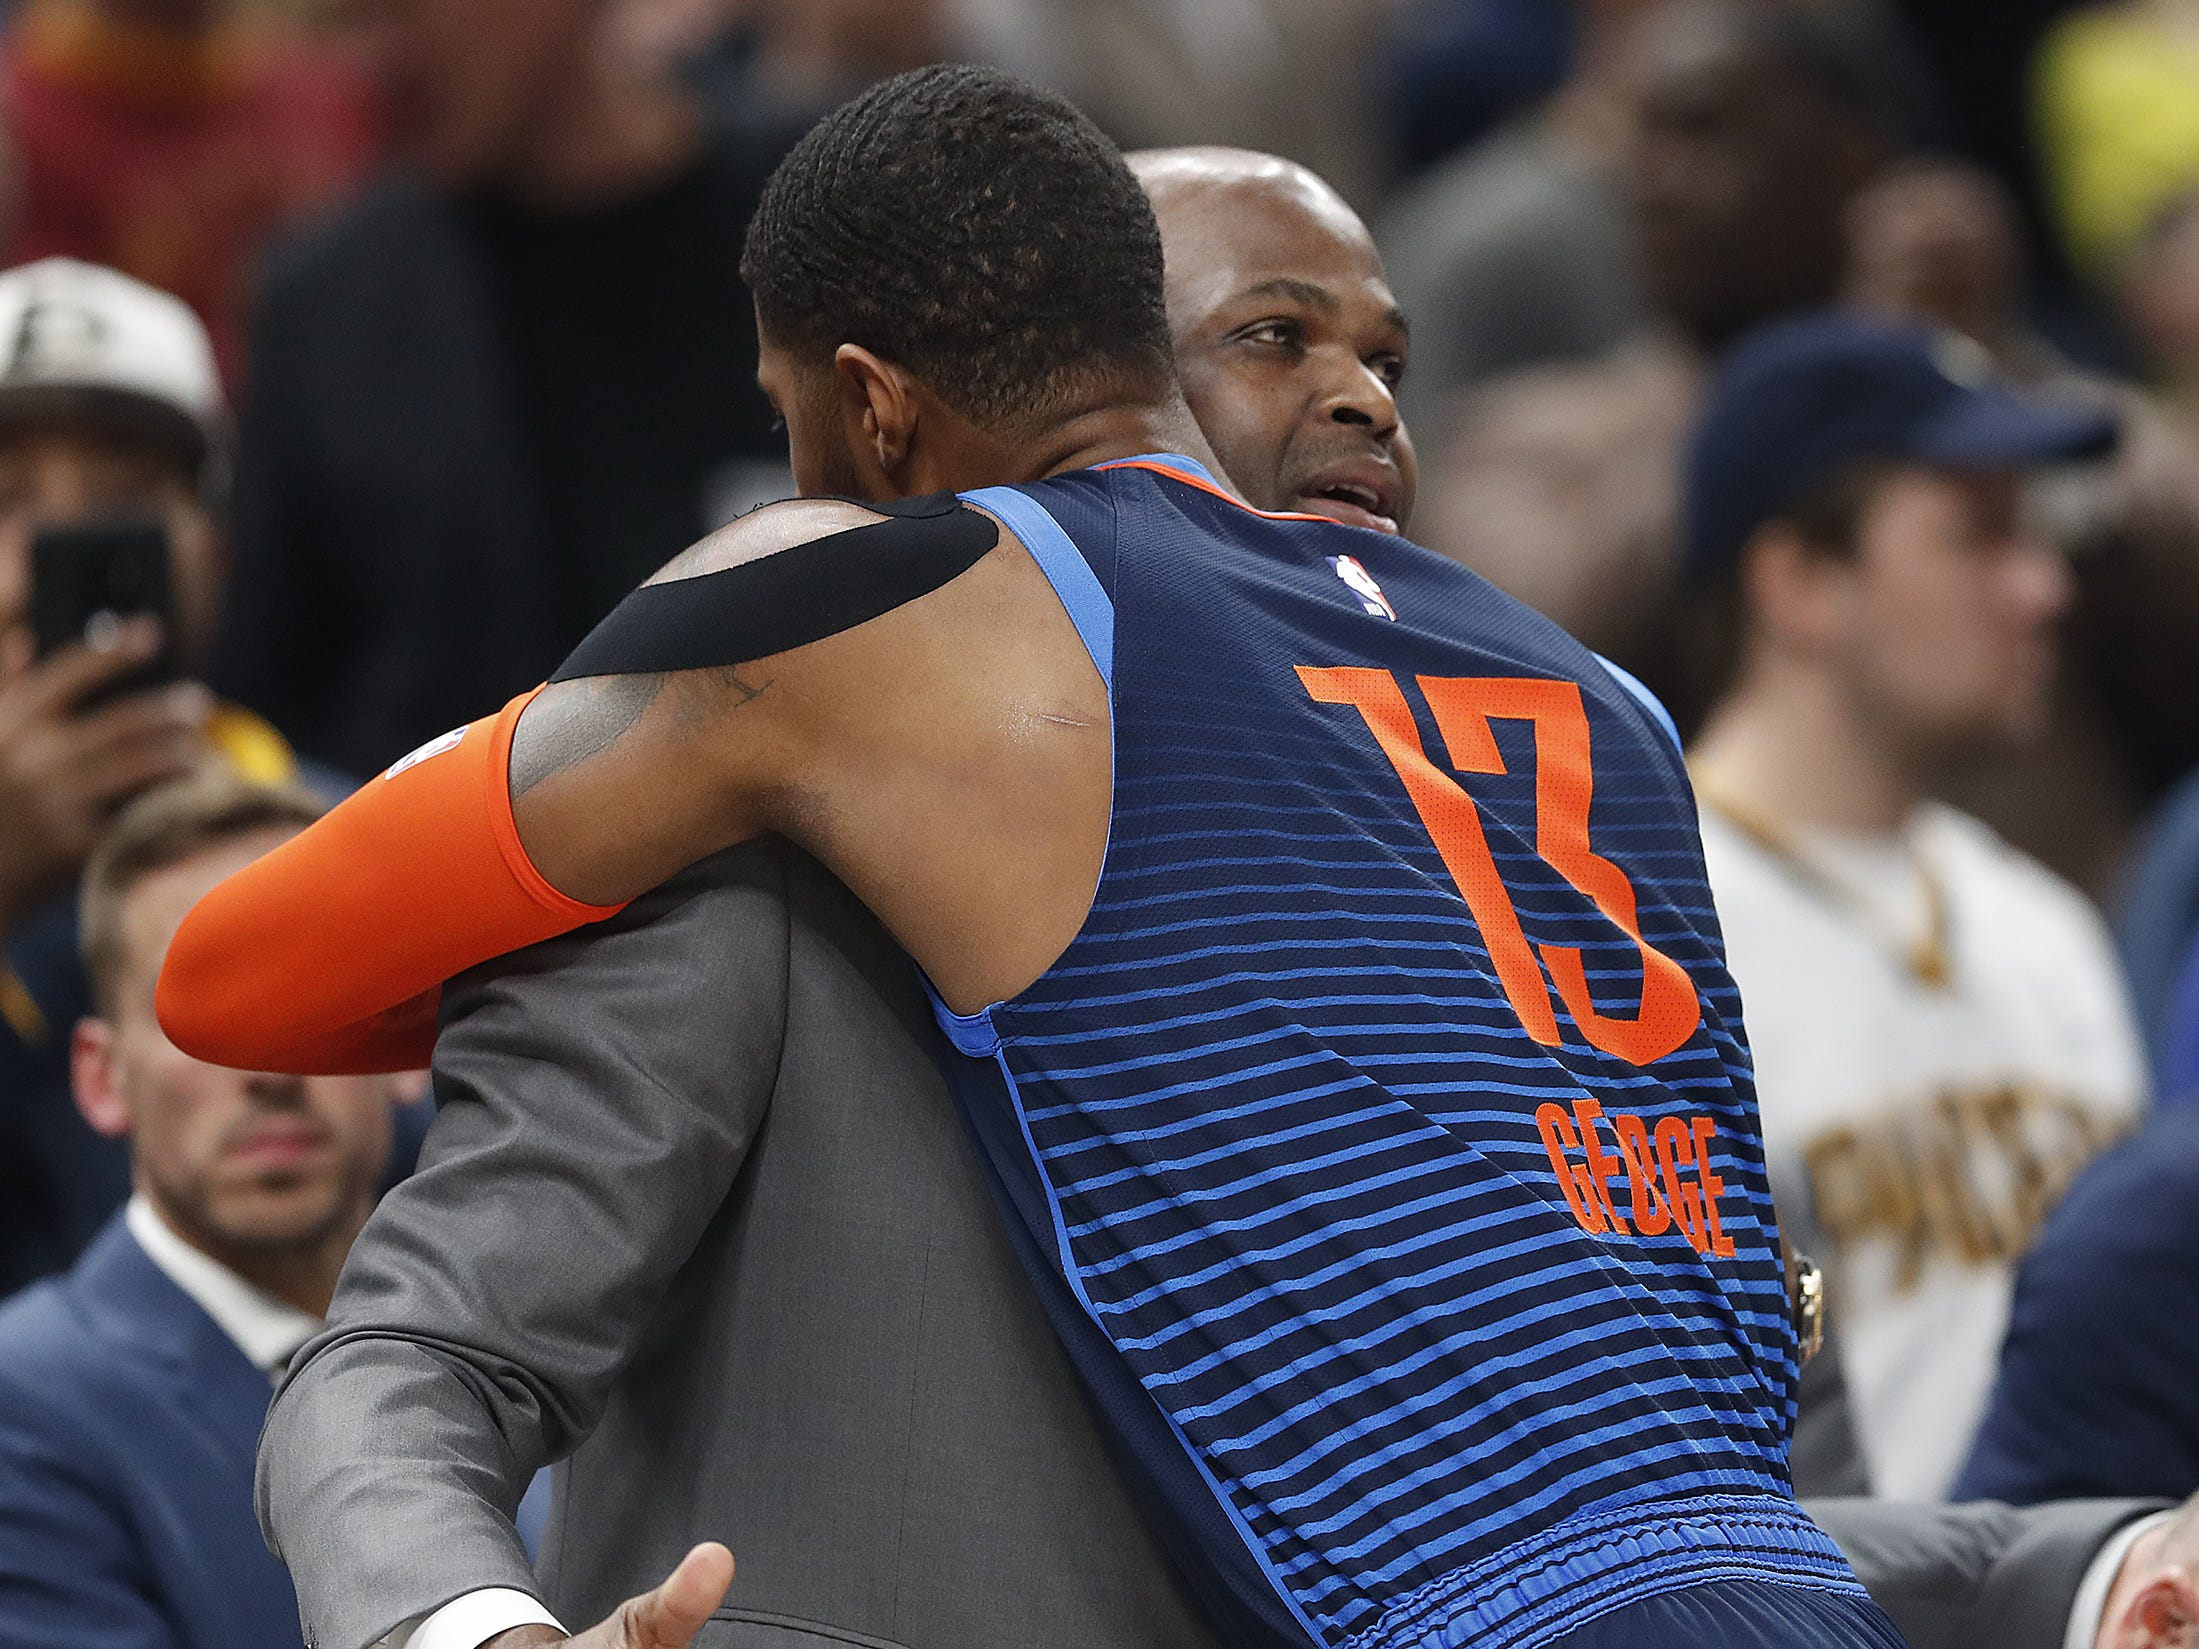 Indiana Pacers head coach Nate McMillan gets a hug from his former player Oklahoma City Thunder forward Paul George (13) in the first half of their game at Bankers Life Fieldhouse on Thursday, Mar. 14, 2019.